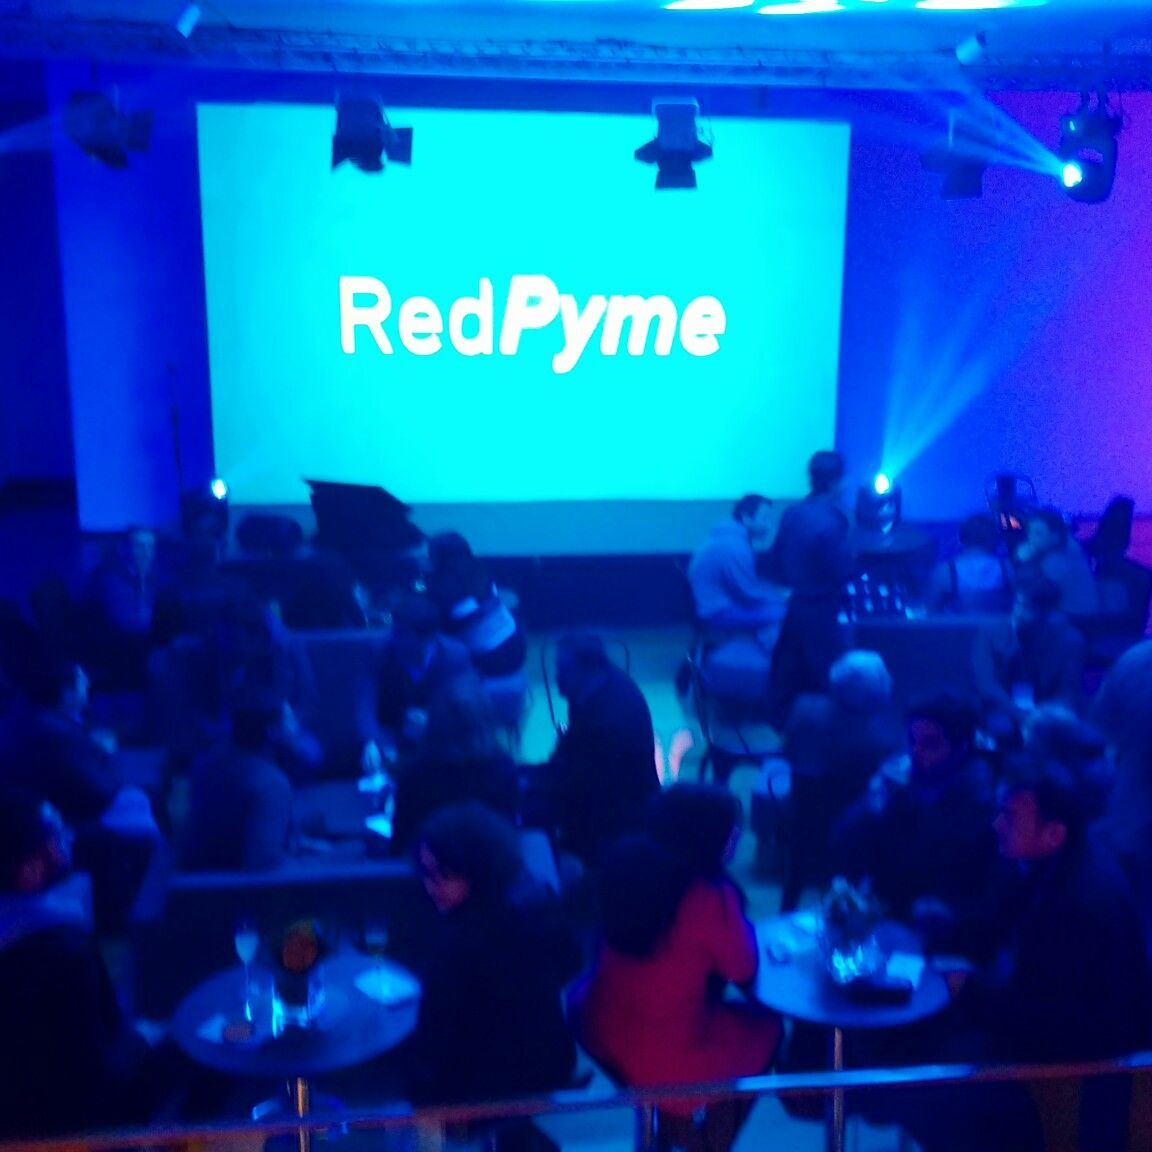 Red Pyme Entel